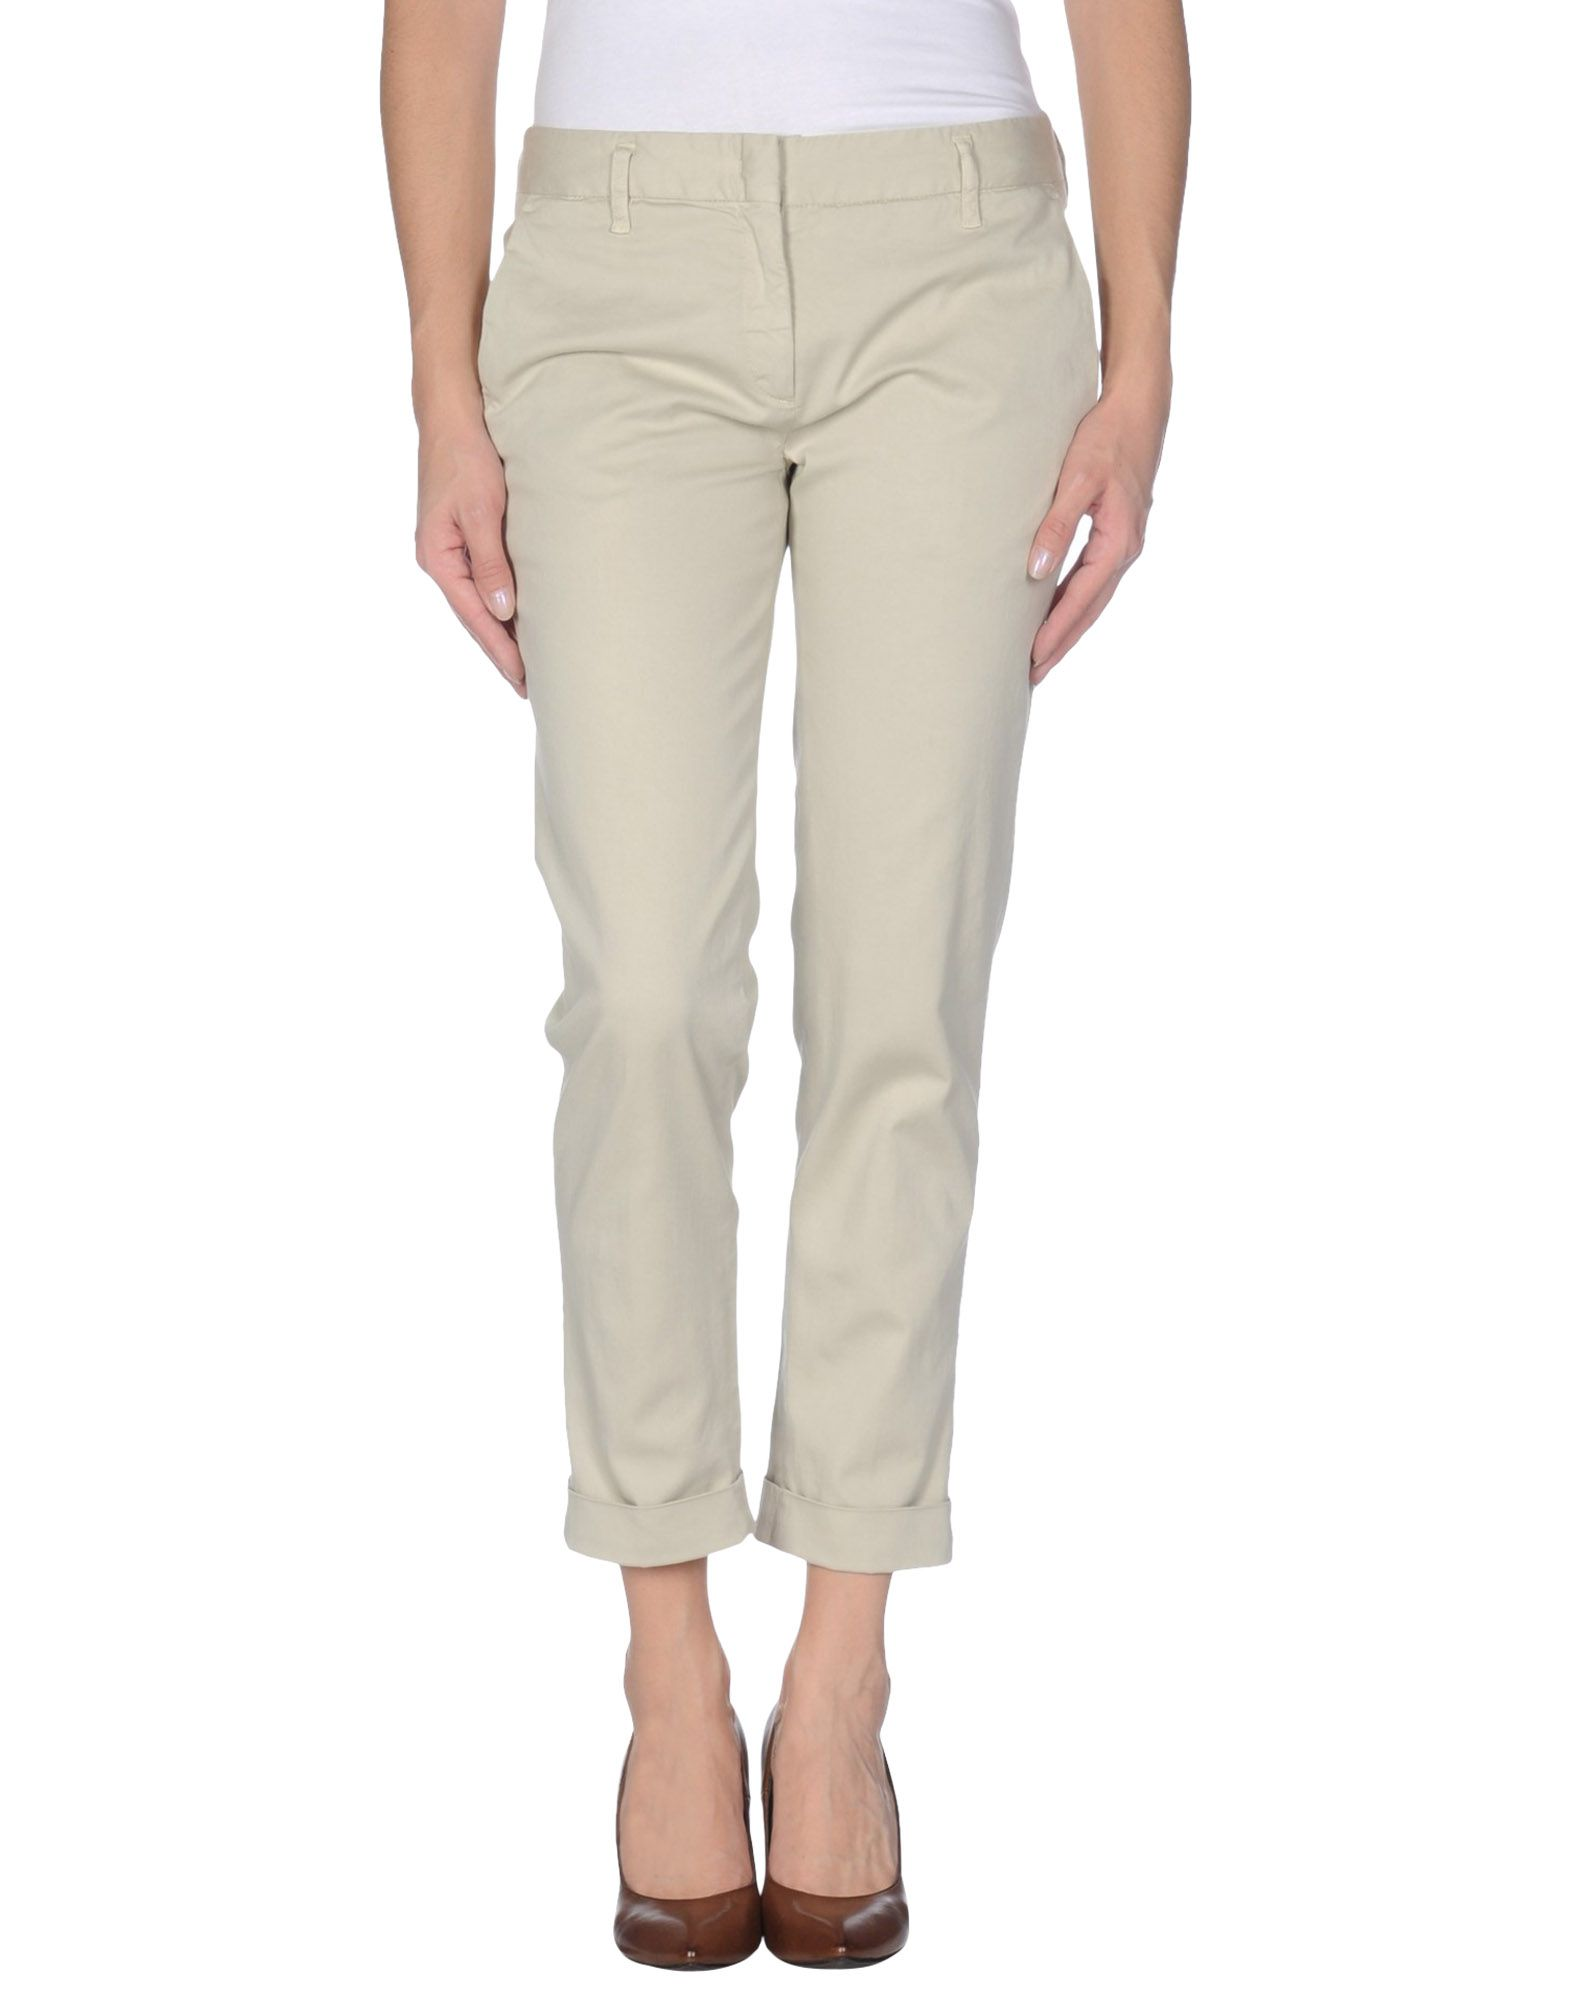 Wonderful Pants Pants Light Grey The Fifth Label You And Me Womens Marle Light